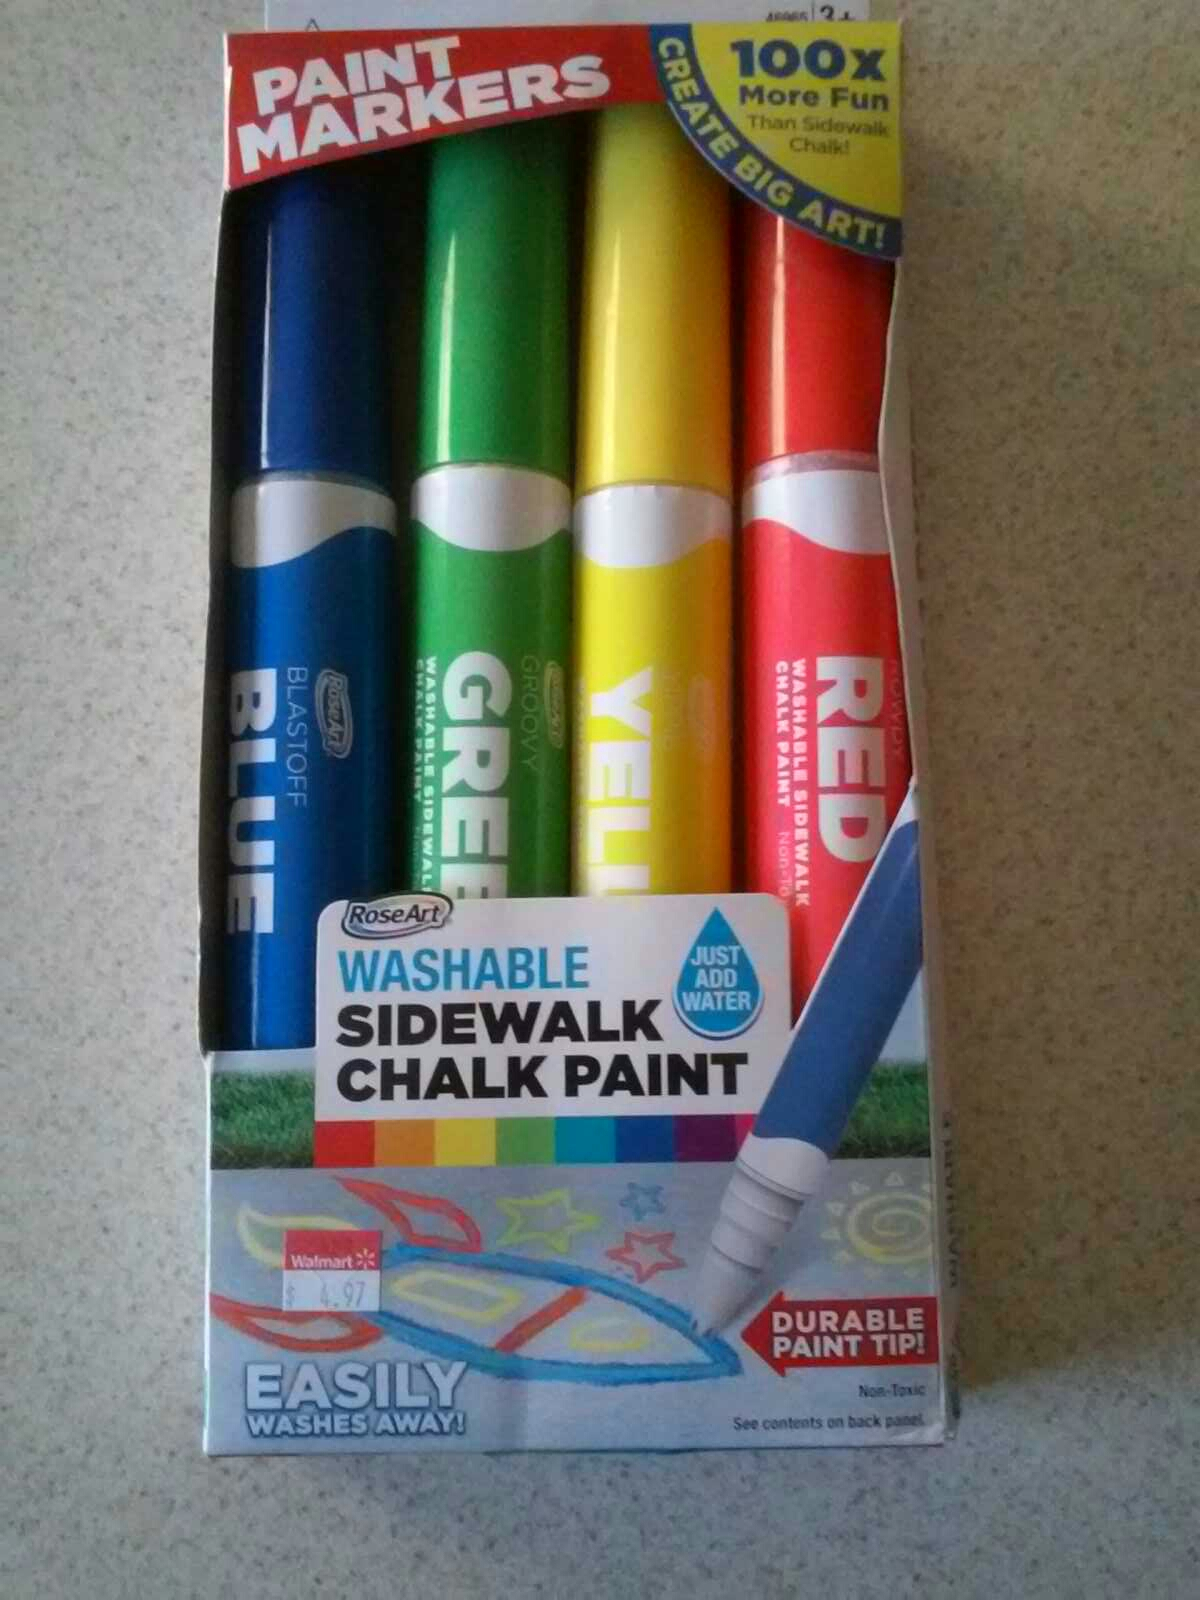 Washable Sidewalk Chalk Paint by RoseArt NEW $2.50